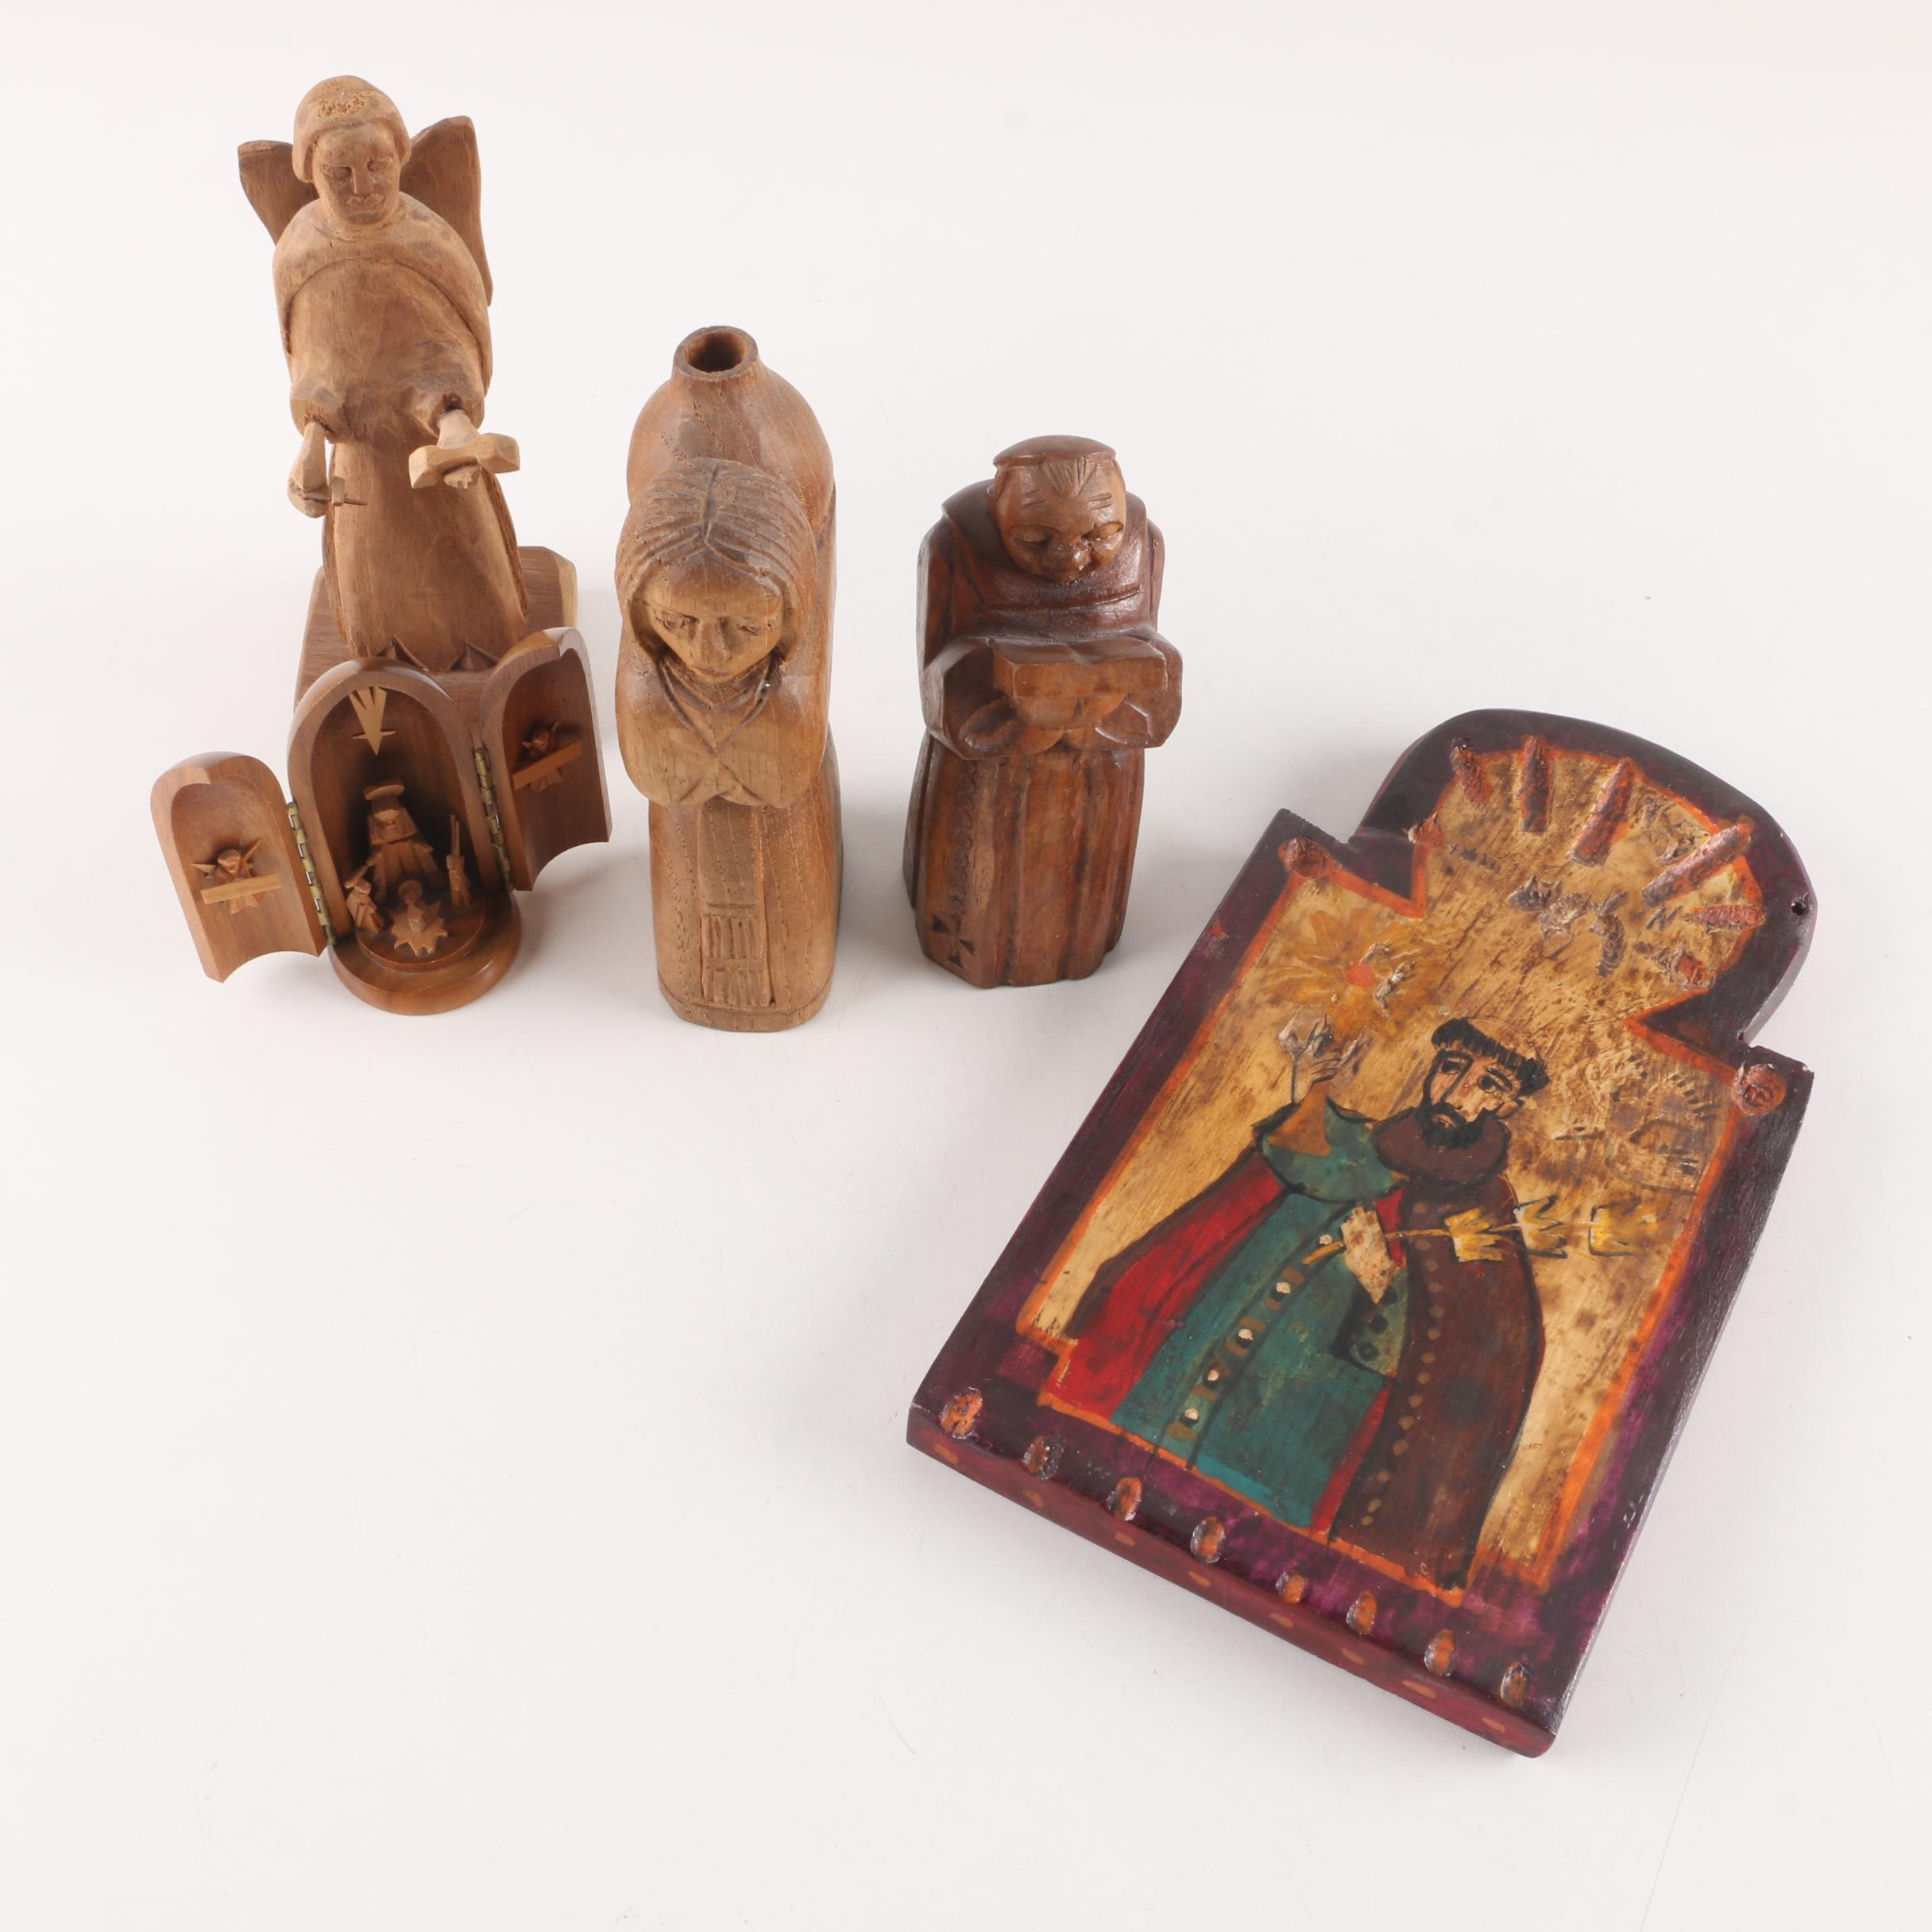 New Mexican Retablo and Other Religious Wood Carvings